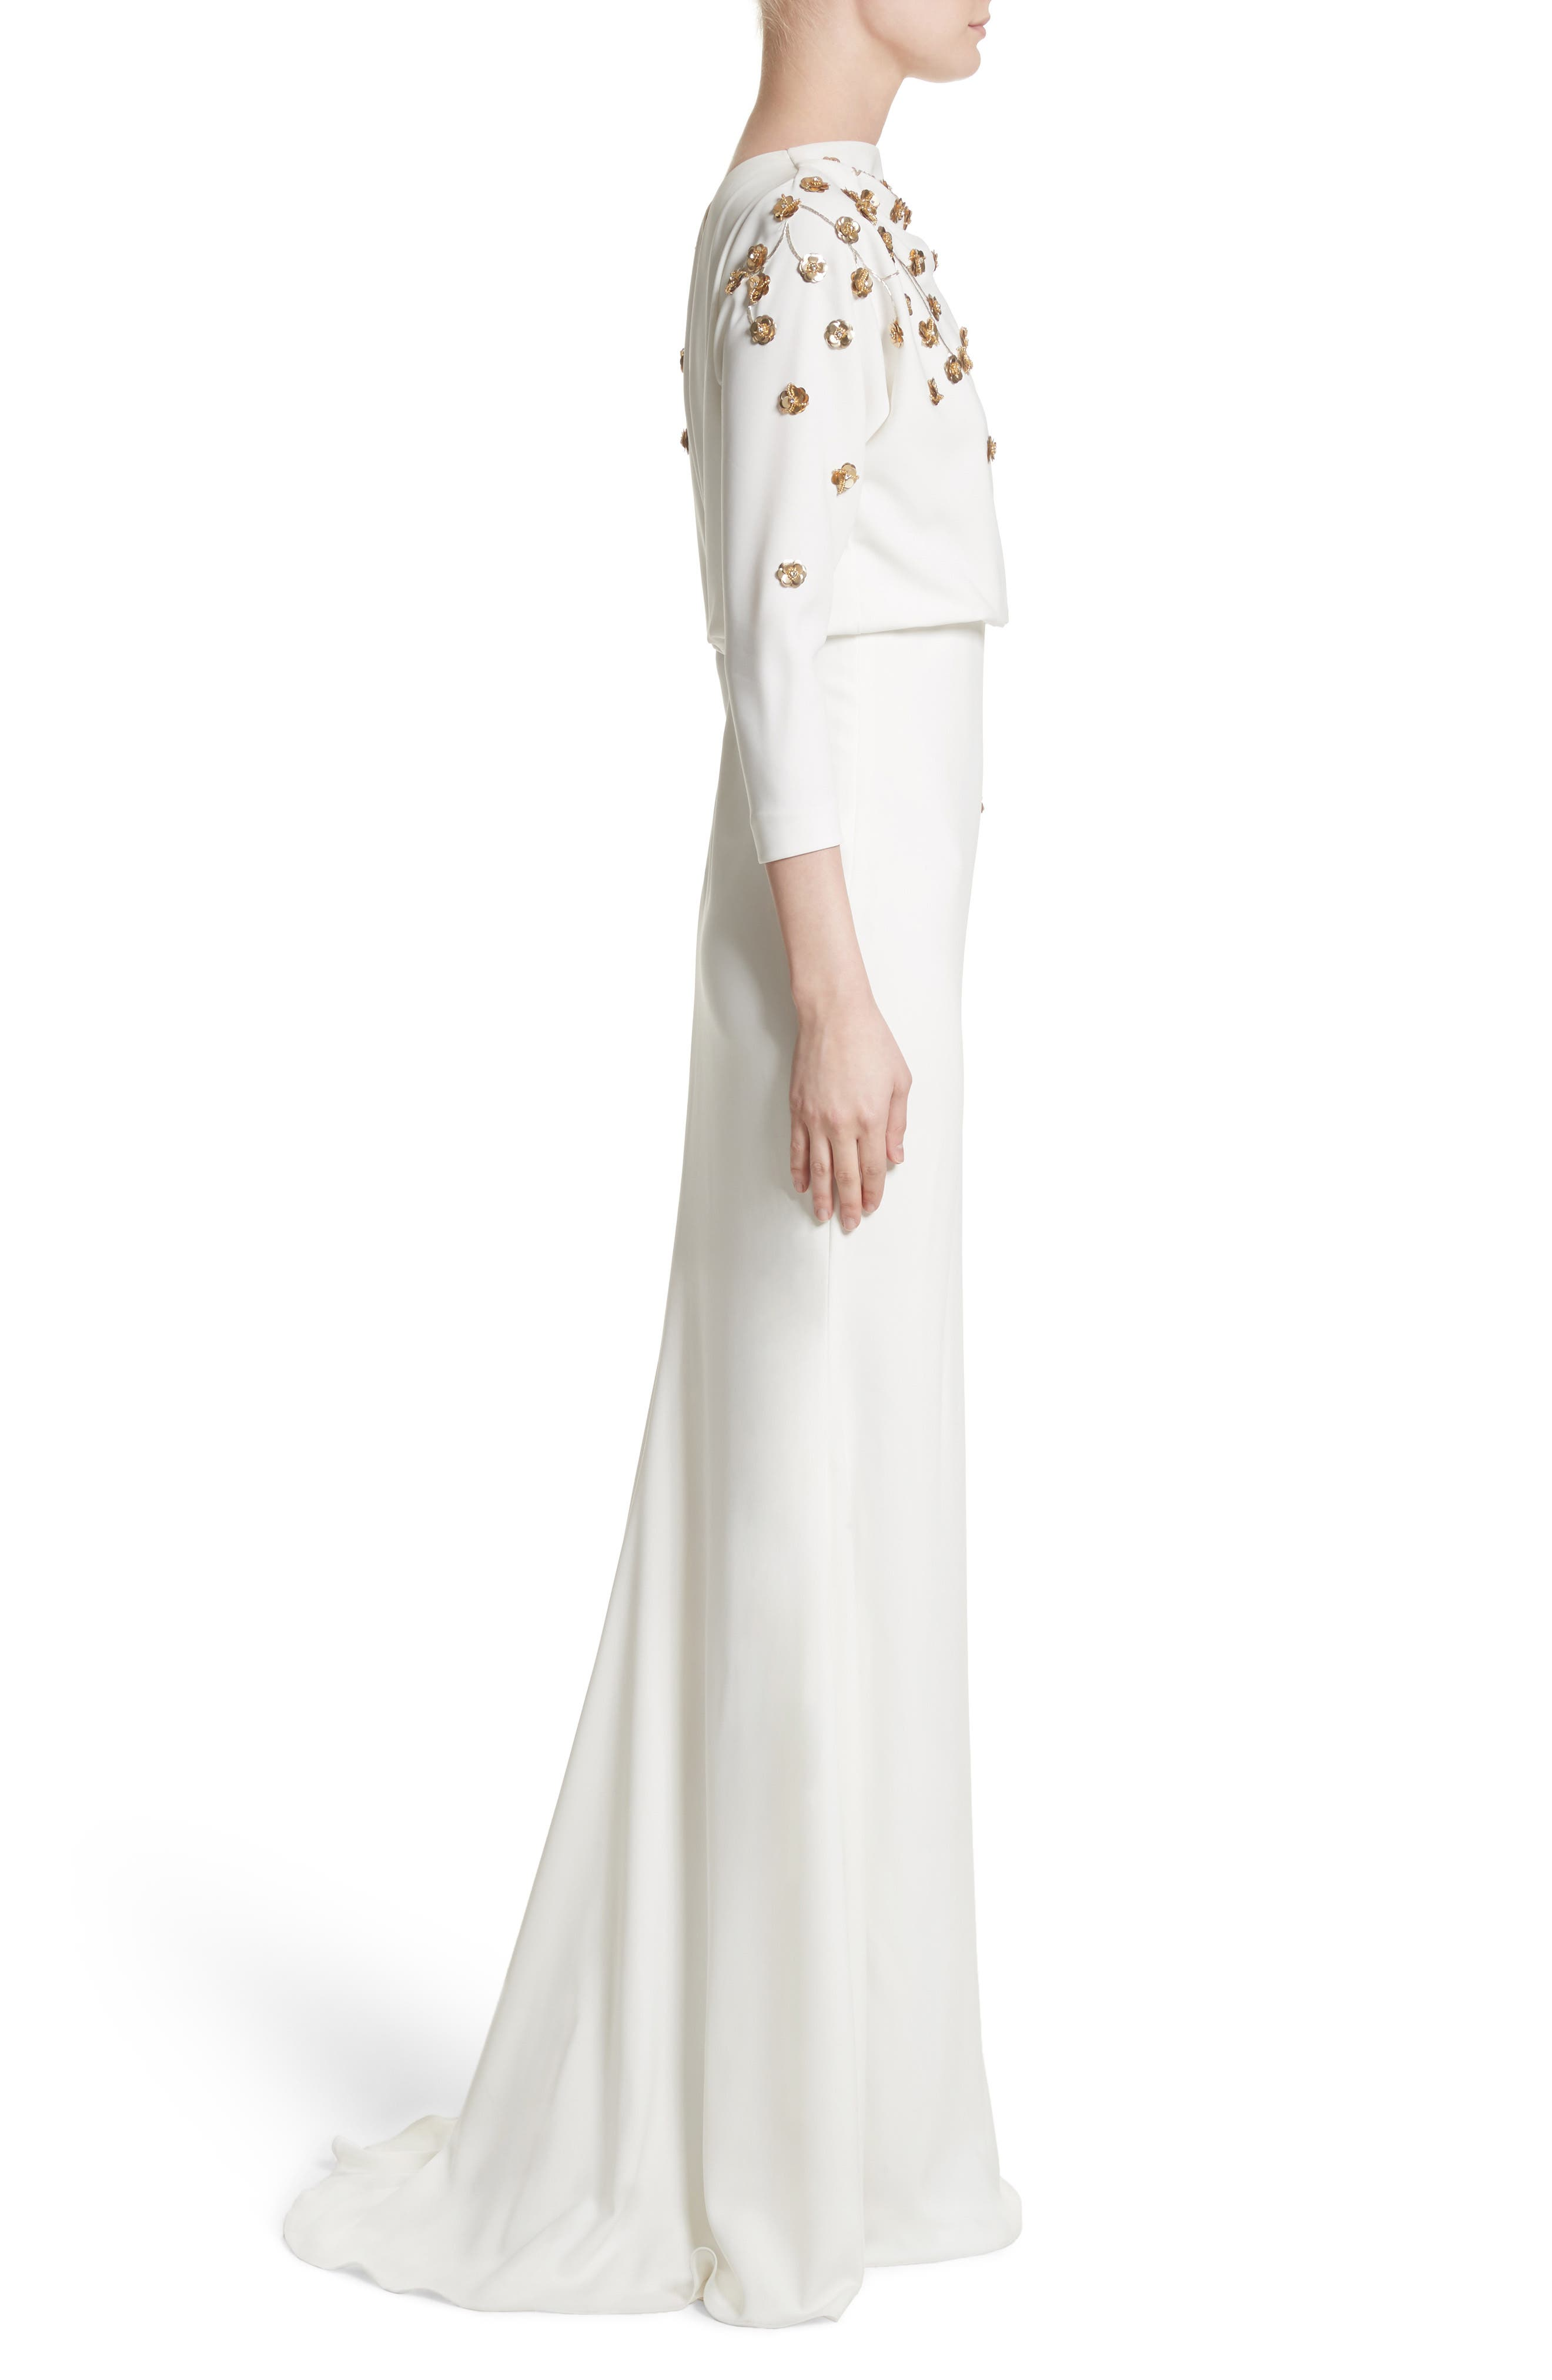 Badgley Mischka Couture Floral Embellished Crepe Gown,                             Alternate thumbnail 3, color,                             900